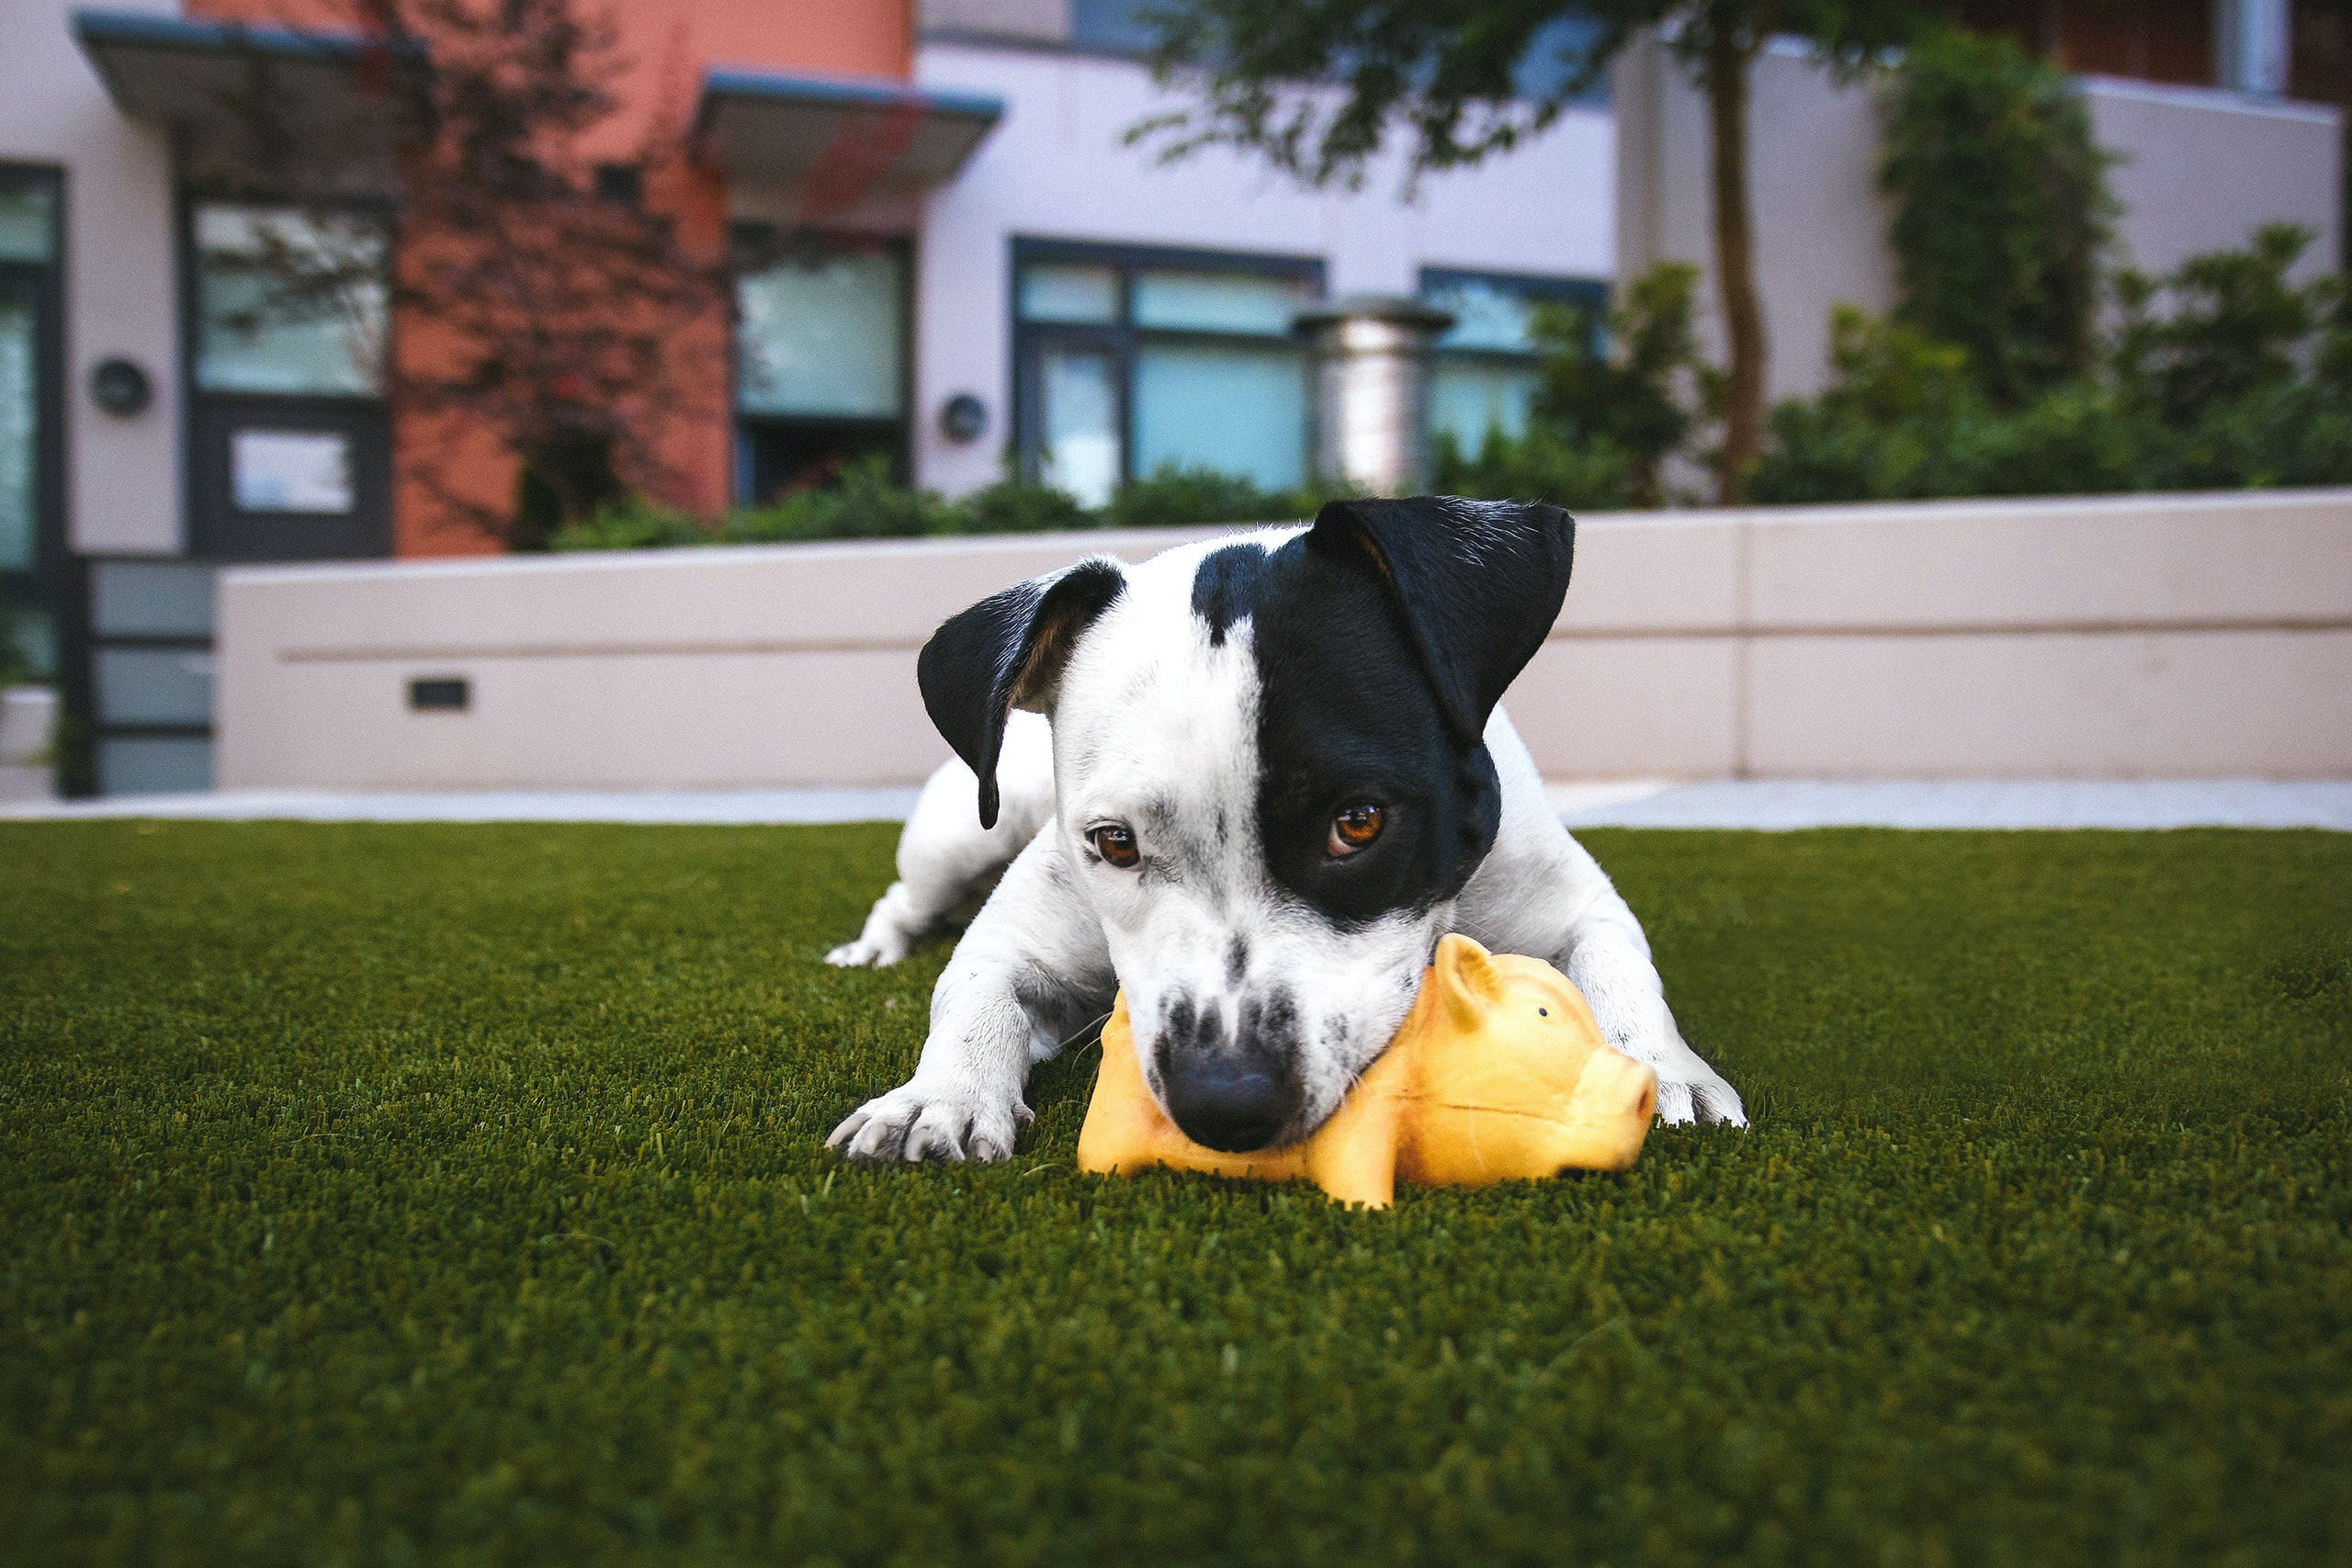 A small puppy playing with a yellow toy pig on a green lawn